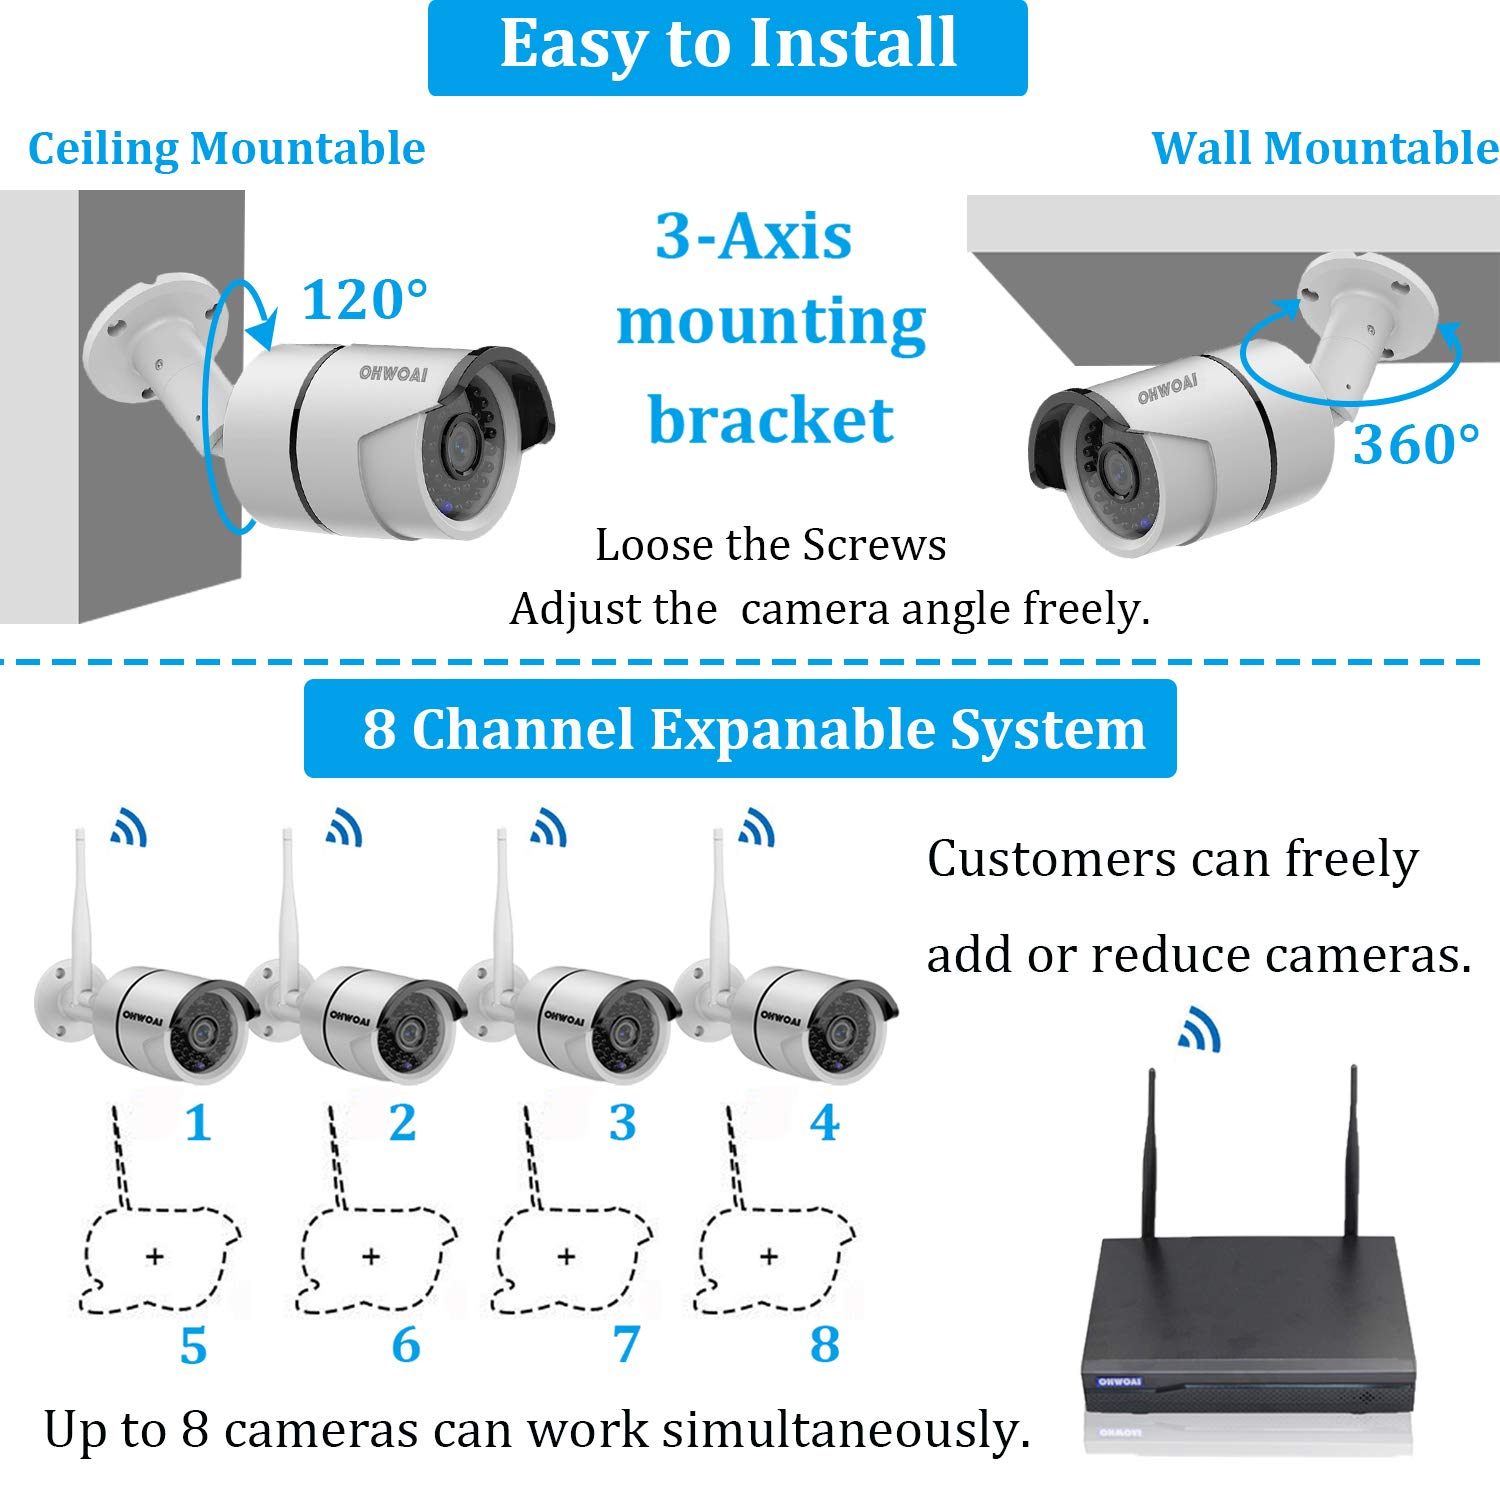 2019 Newest OHWOAI Security Camera System Wireless, 8CH 1080P NVR,8Pcs 960P HD Outdoor Indoor IP Cameras,Home CCTV Surveillance System No Hard Drive Weatherproof,Remote Access,Plug Play,Night Vision